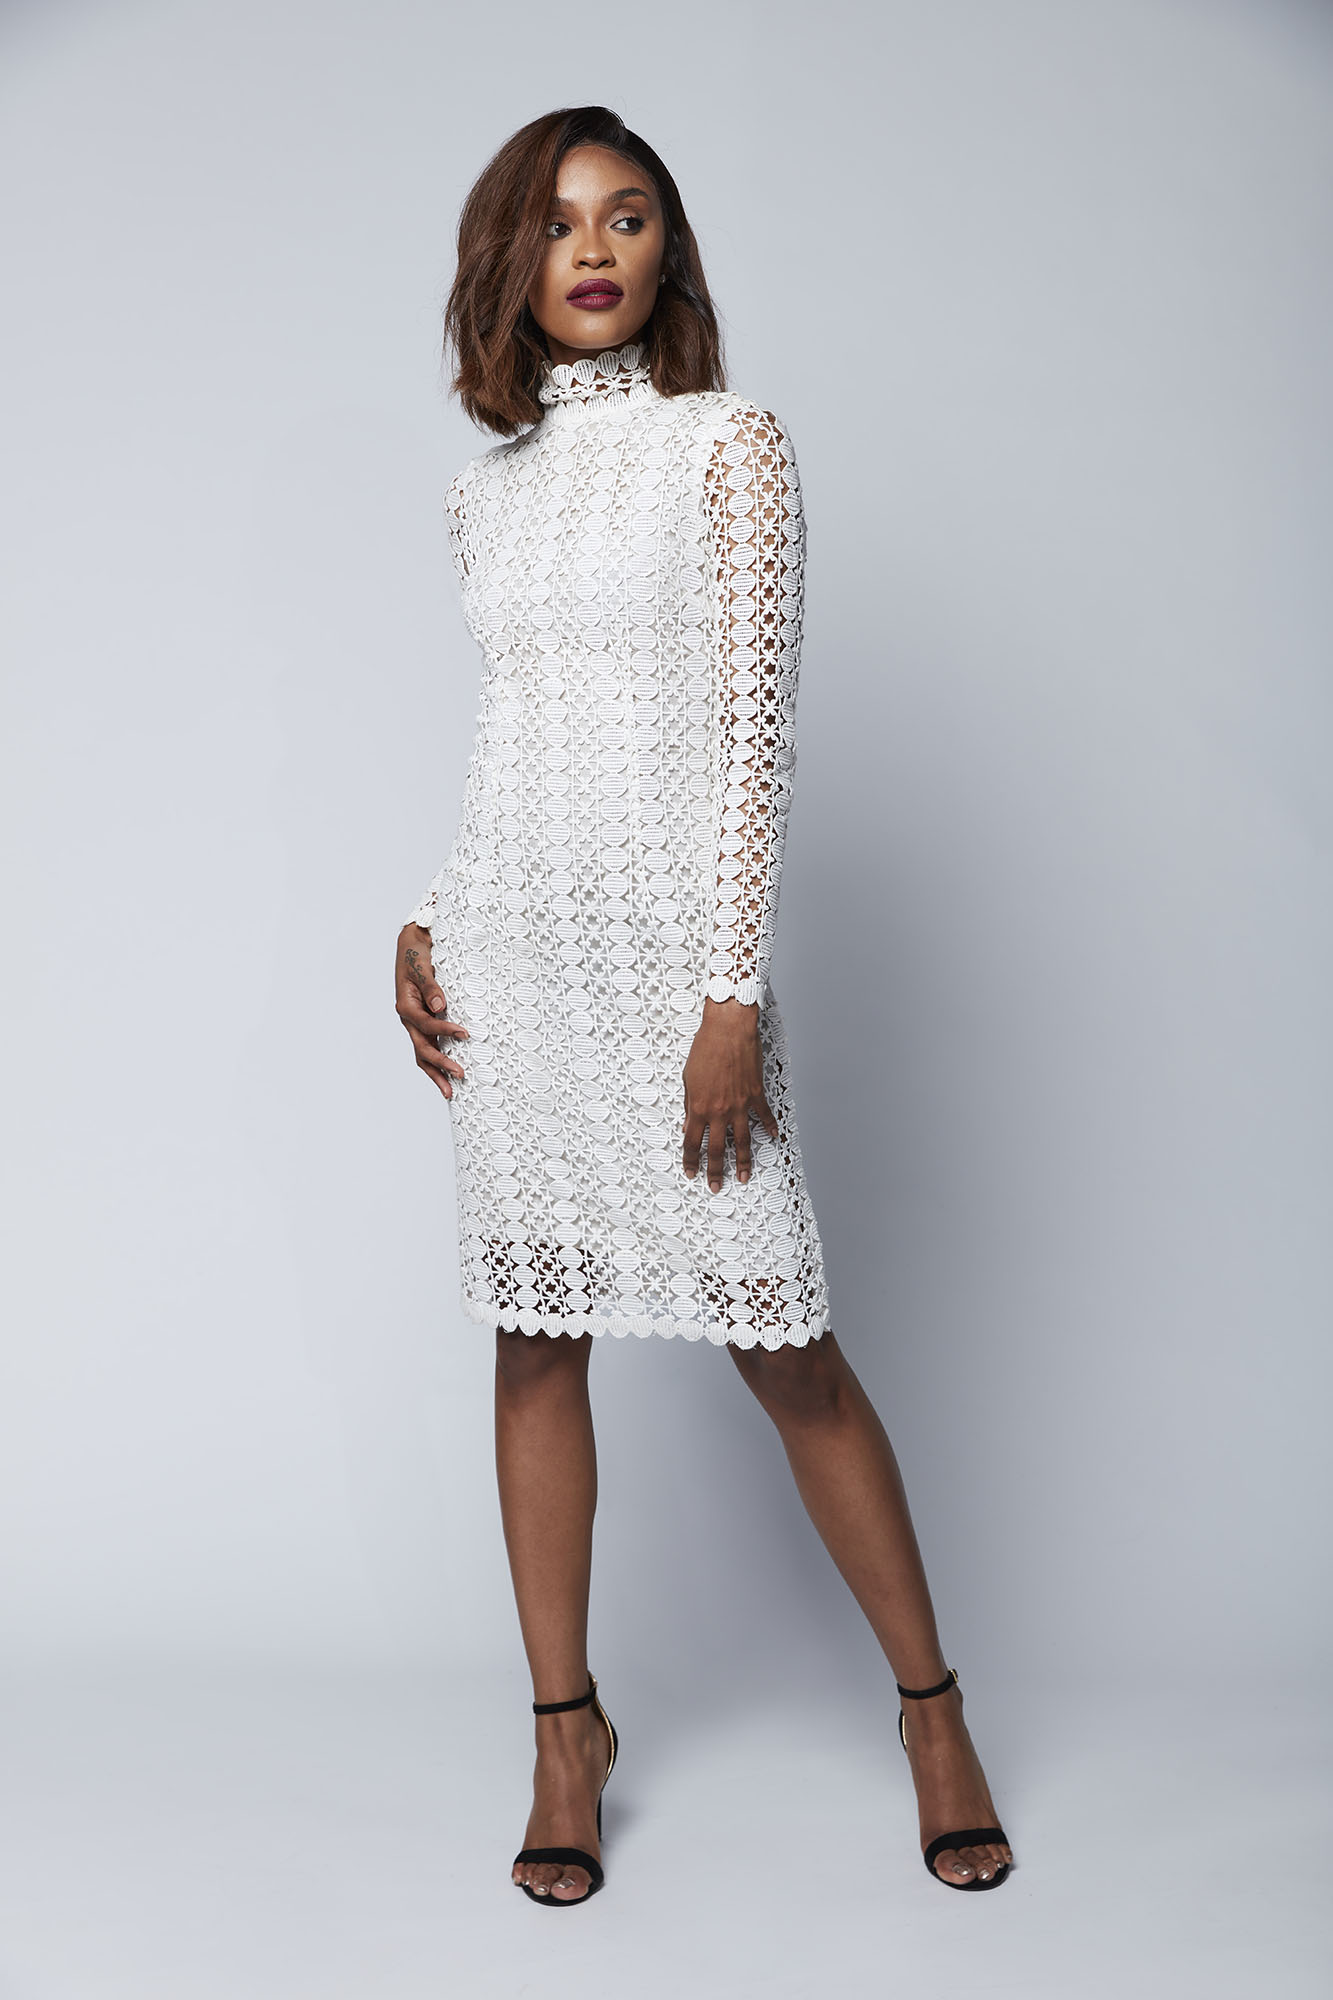 This long-sleeved high neck dress features an ultra-lightweight Japanese cotton lace that is ideal for the bride seeking a simple yet elegant look for her pre-wedding, wedding or after party look.